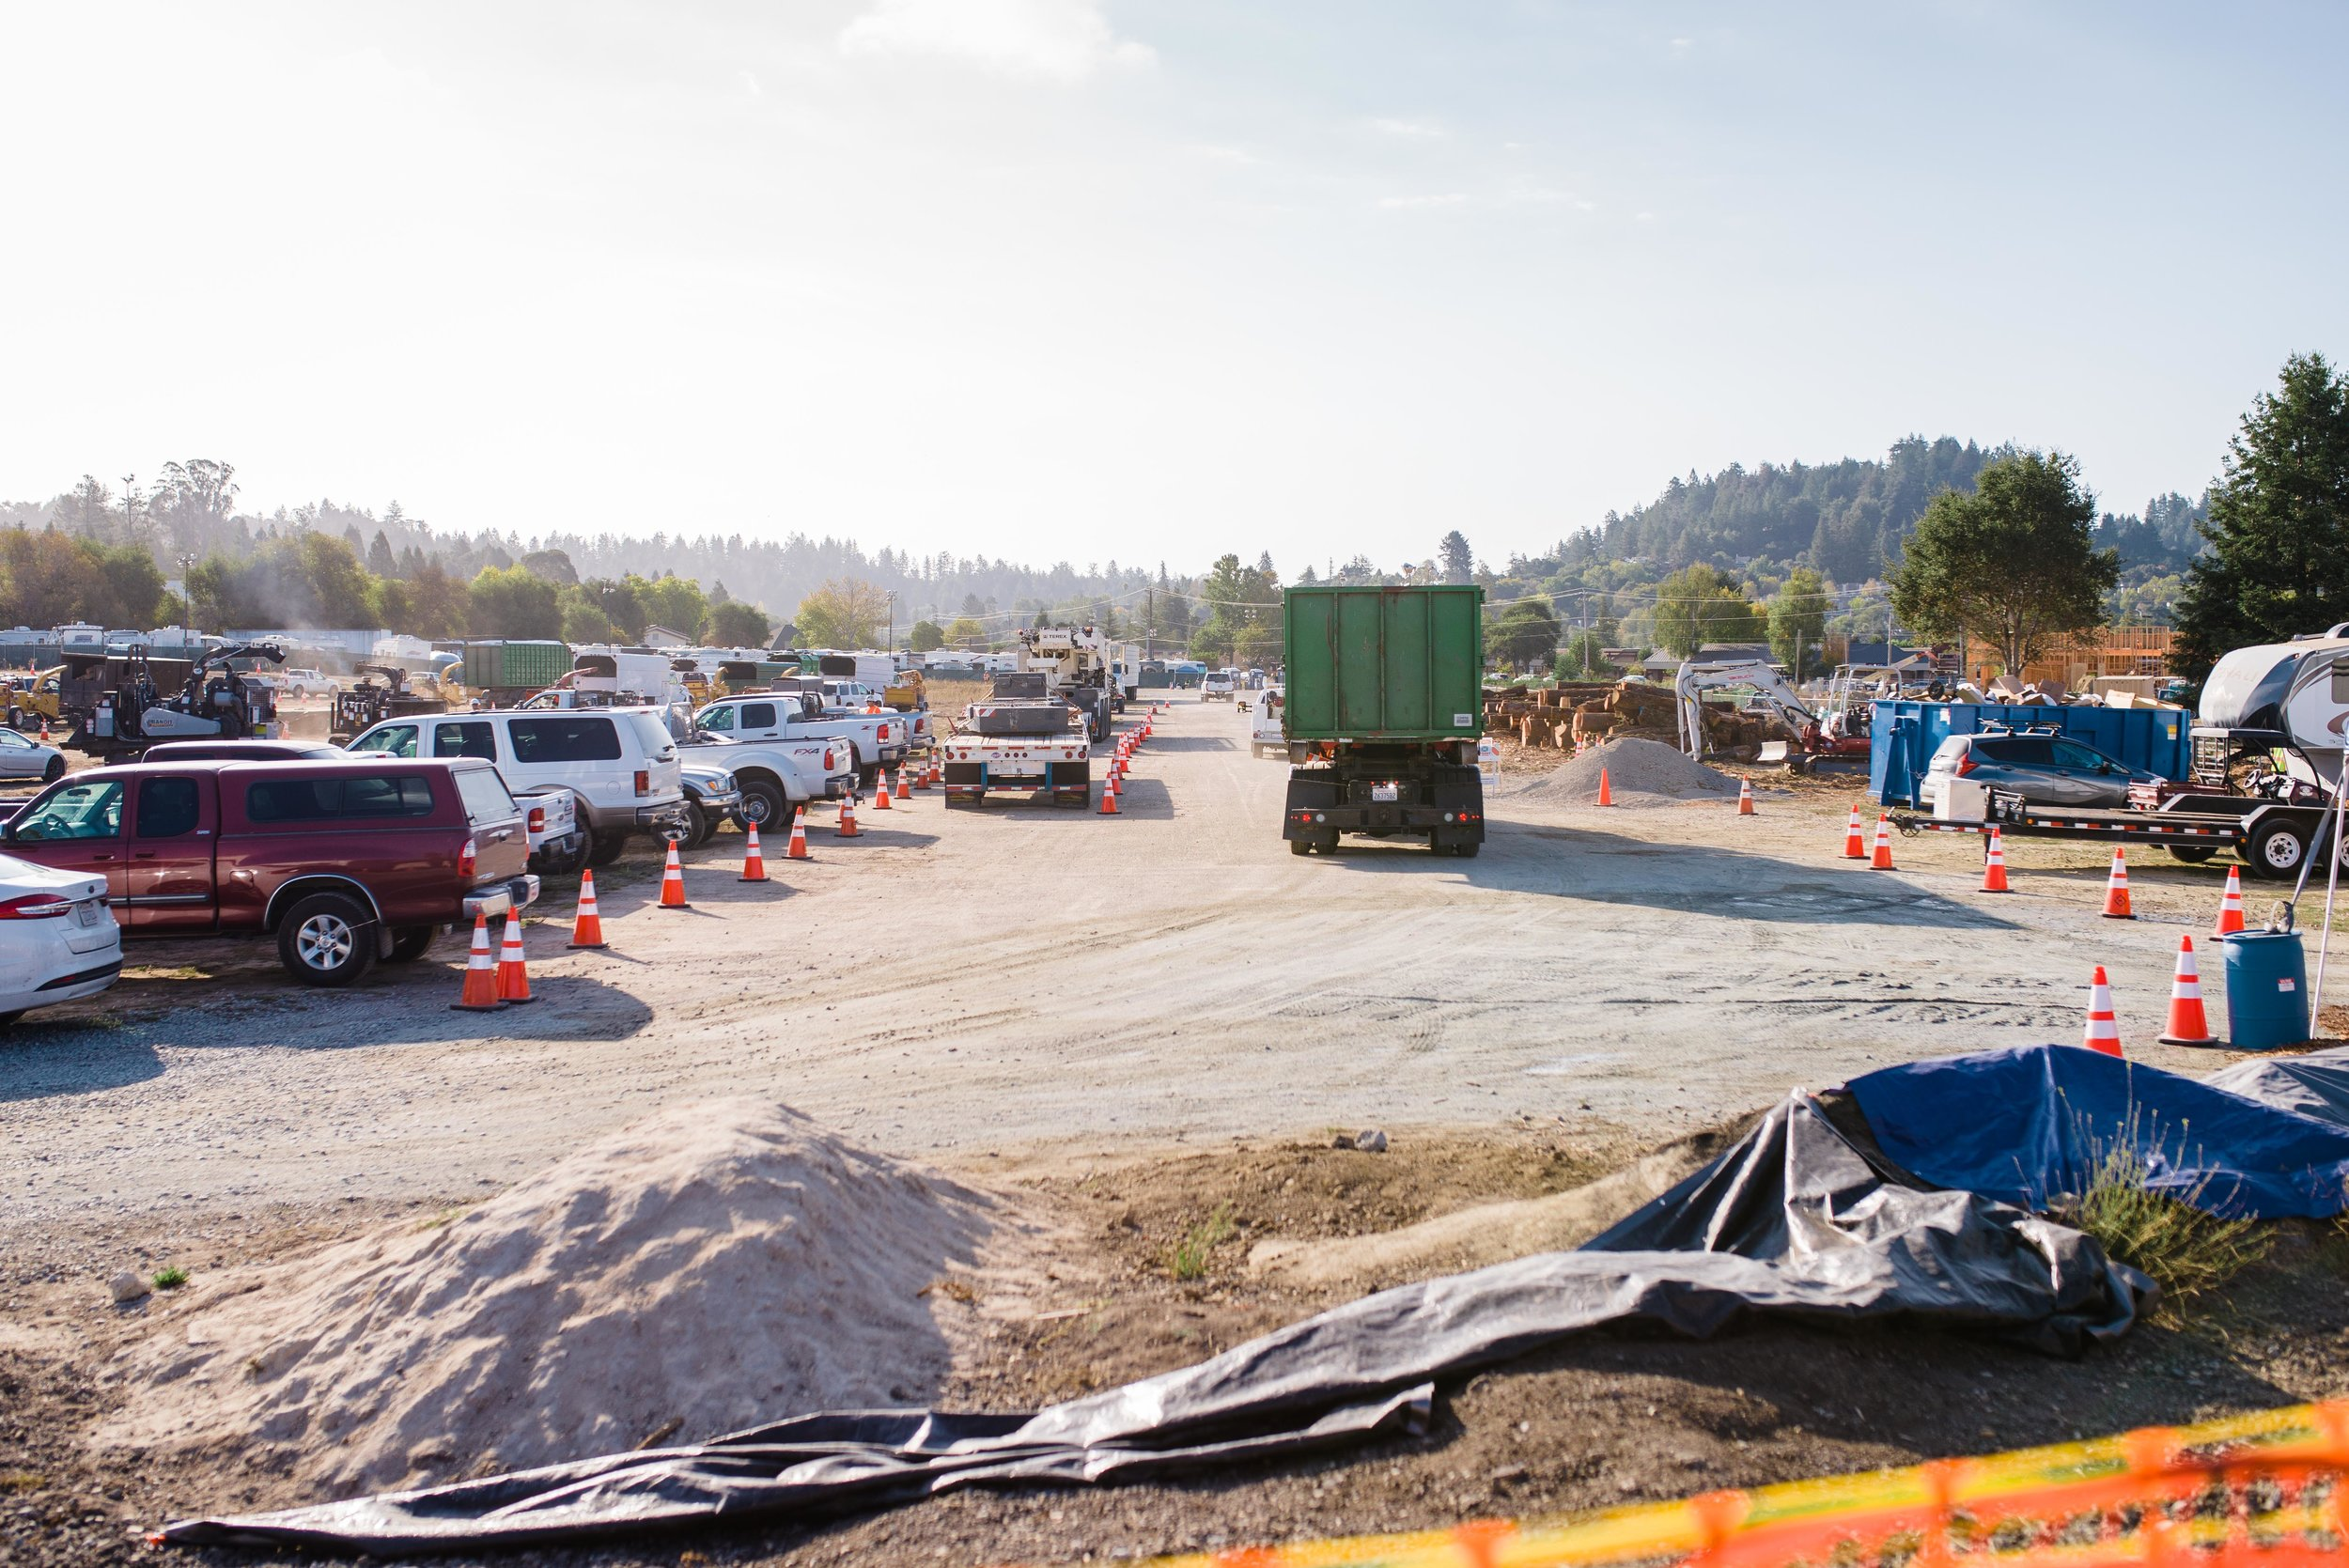 Views of the PG&E basecamp, Scotts Valley, CA October 2018.